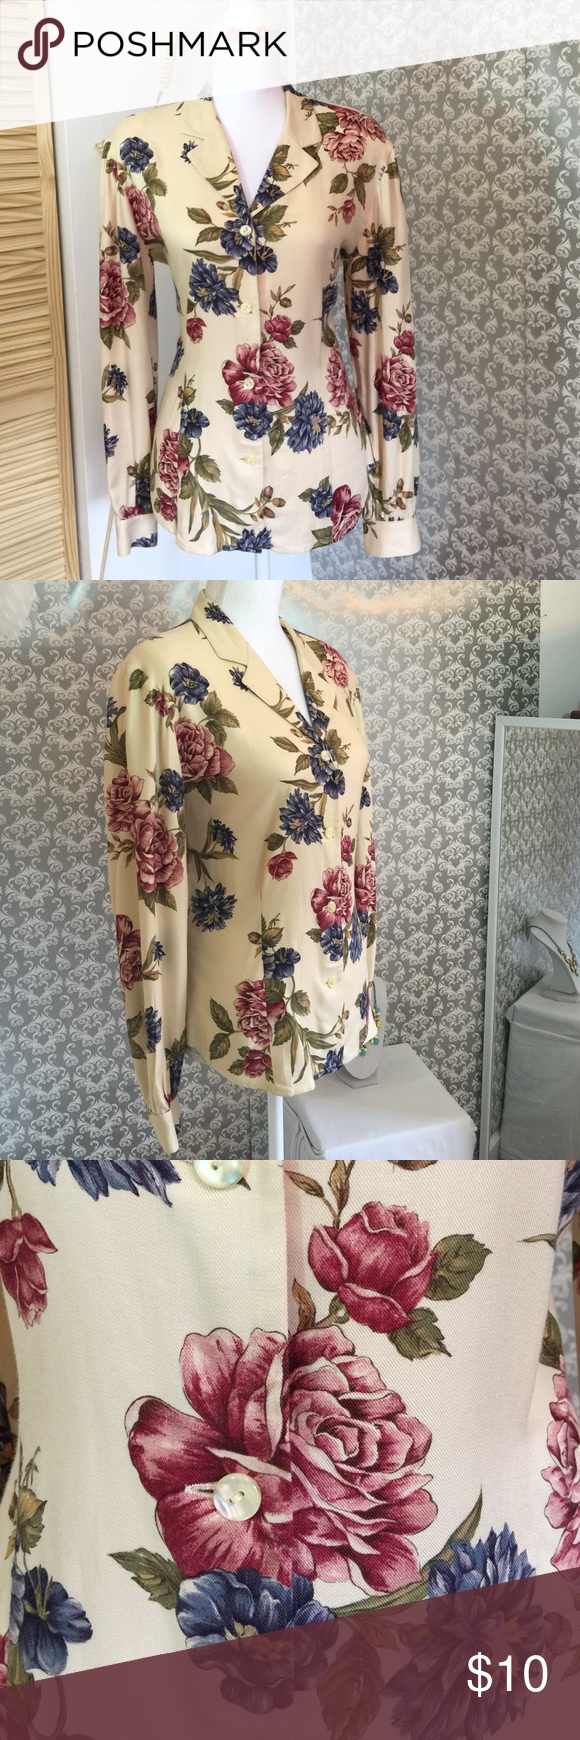 Liz Claiborne flora pattern long sleeve top Lightly worn 26 inches in length 17 inches in width sleeves 23 inches in length fabric is 100% rayon button down Liz Claiborne Tops